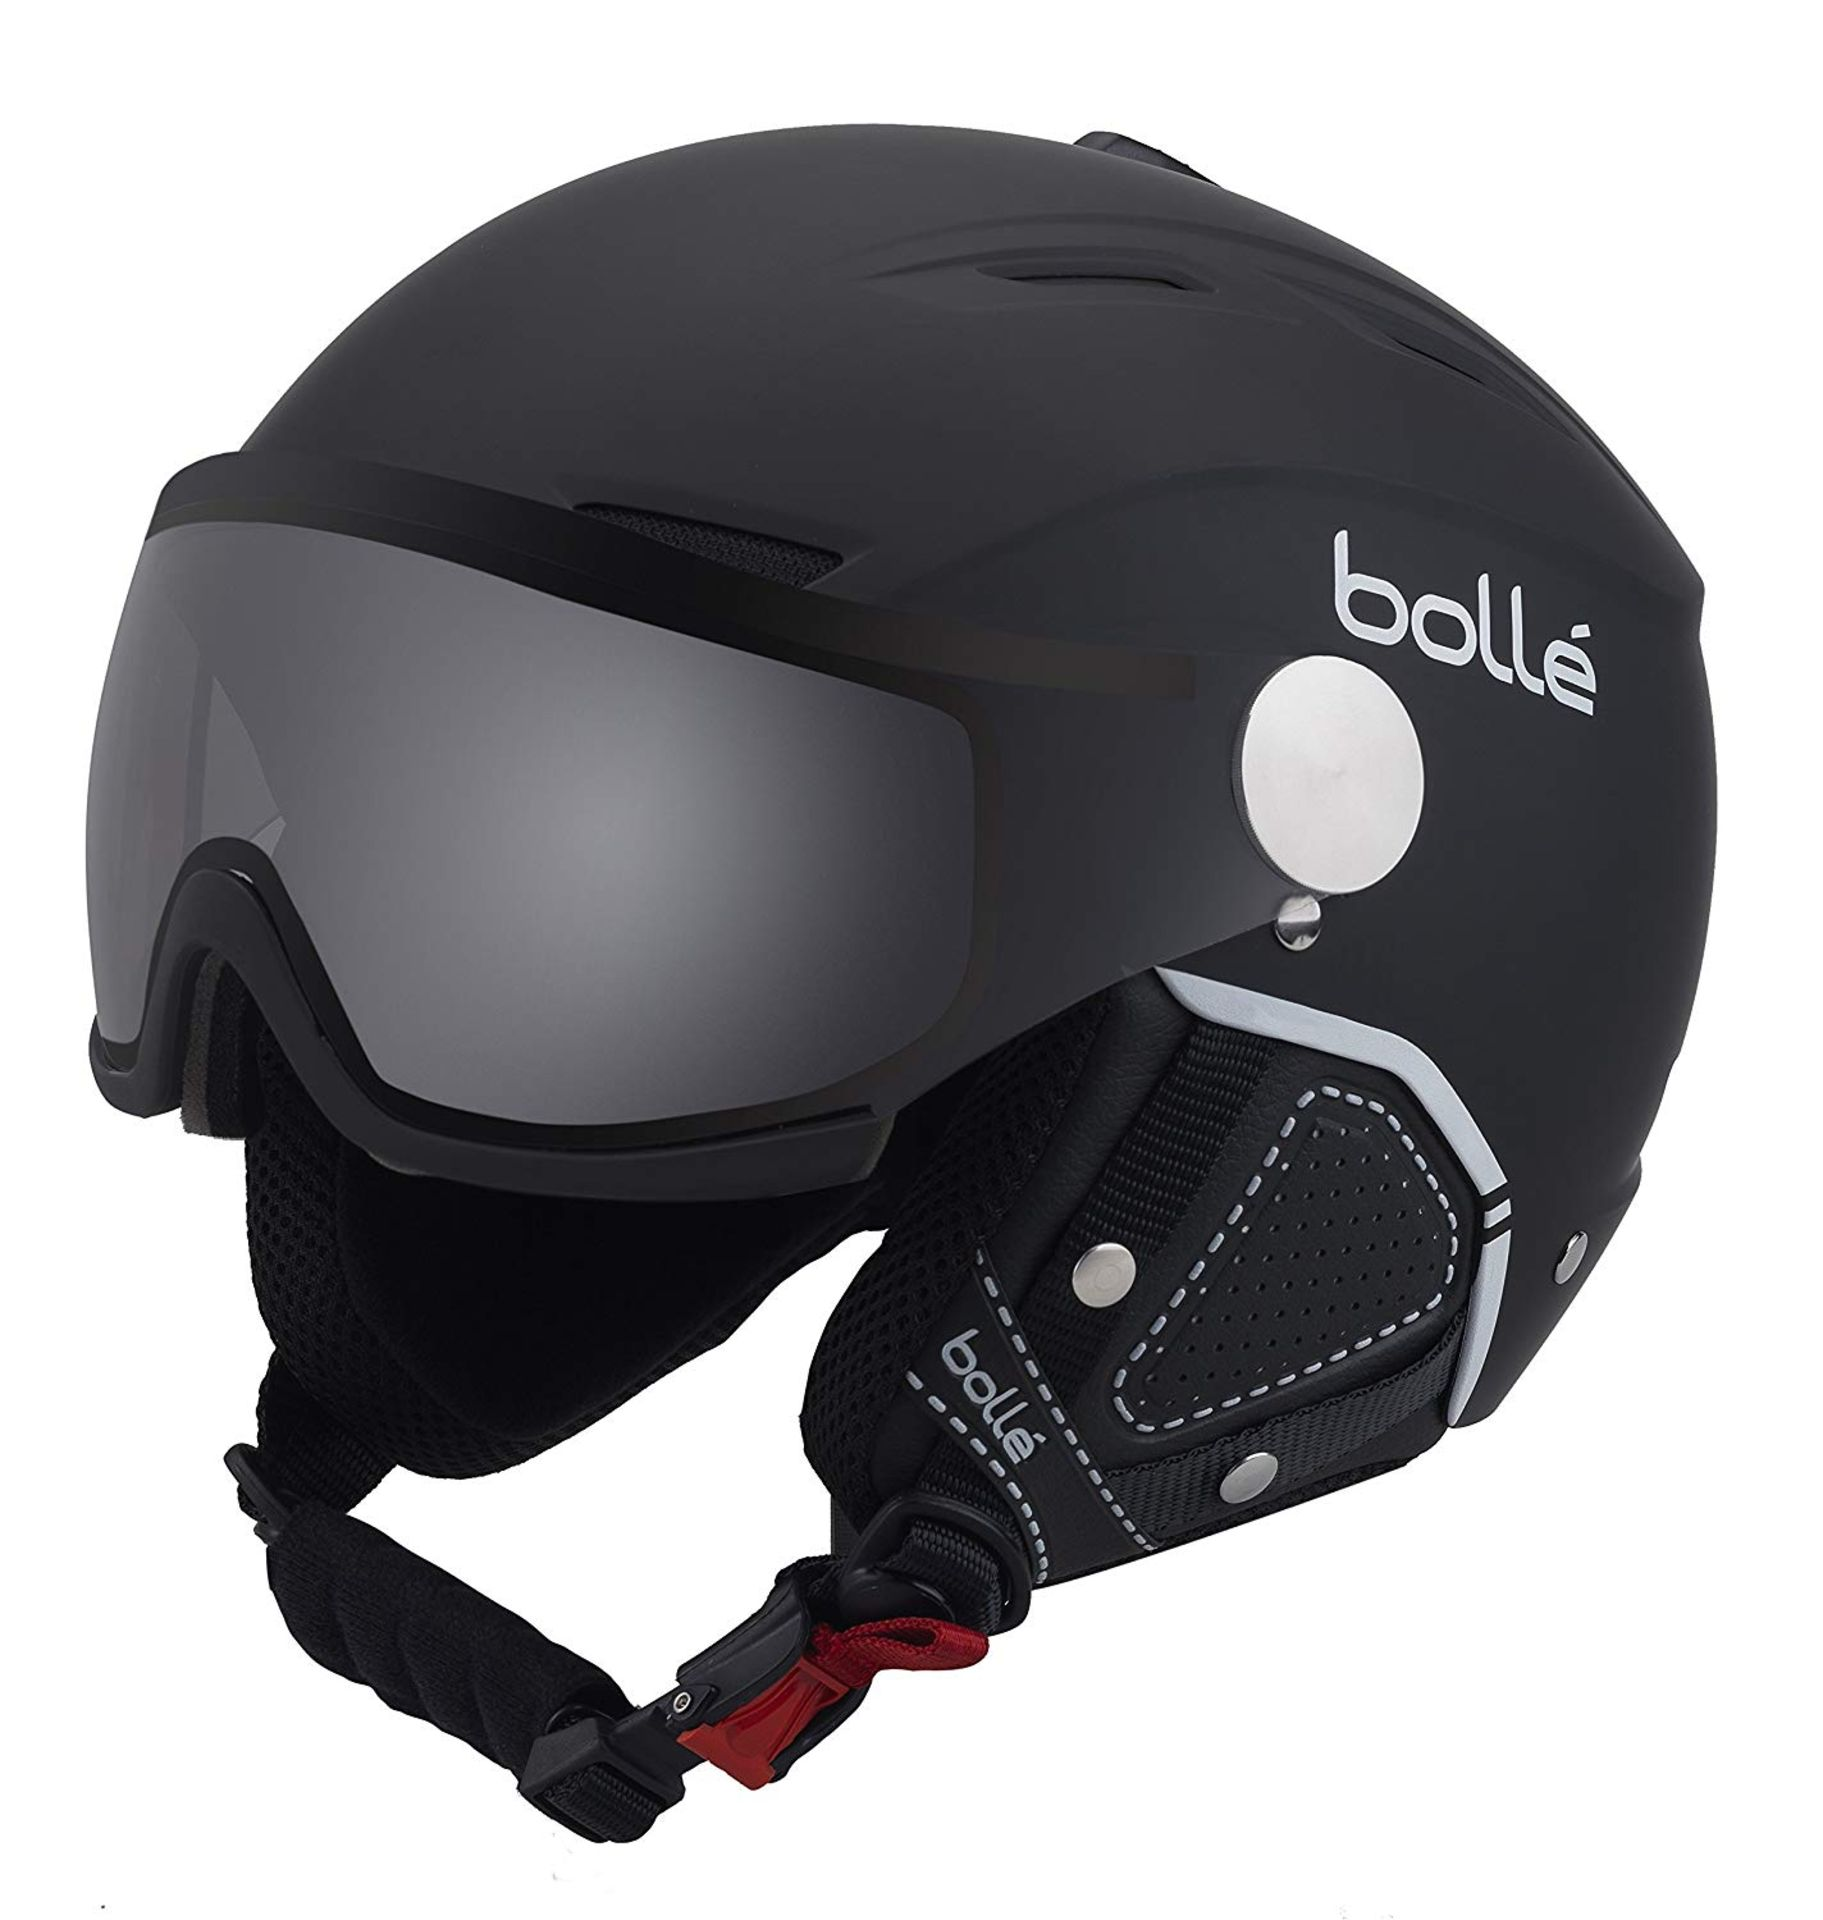 Lot 1 - Bollé Backline Visor Premium Outdoor Helmet, Black (Soft black and white), 59 - 61 cm RRP £144.99